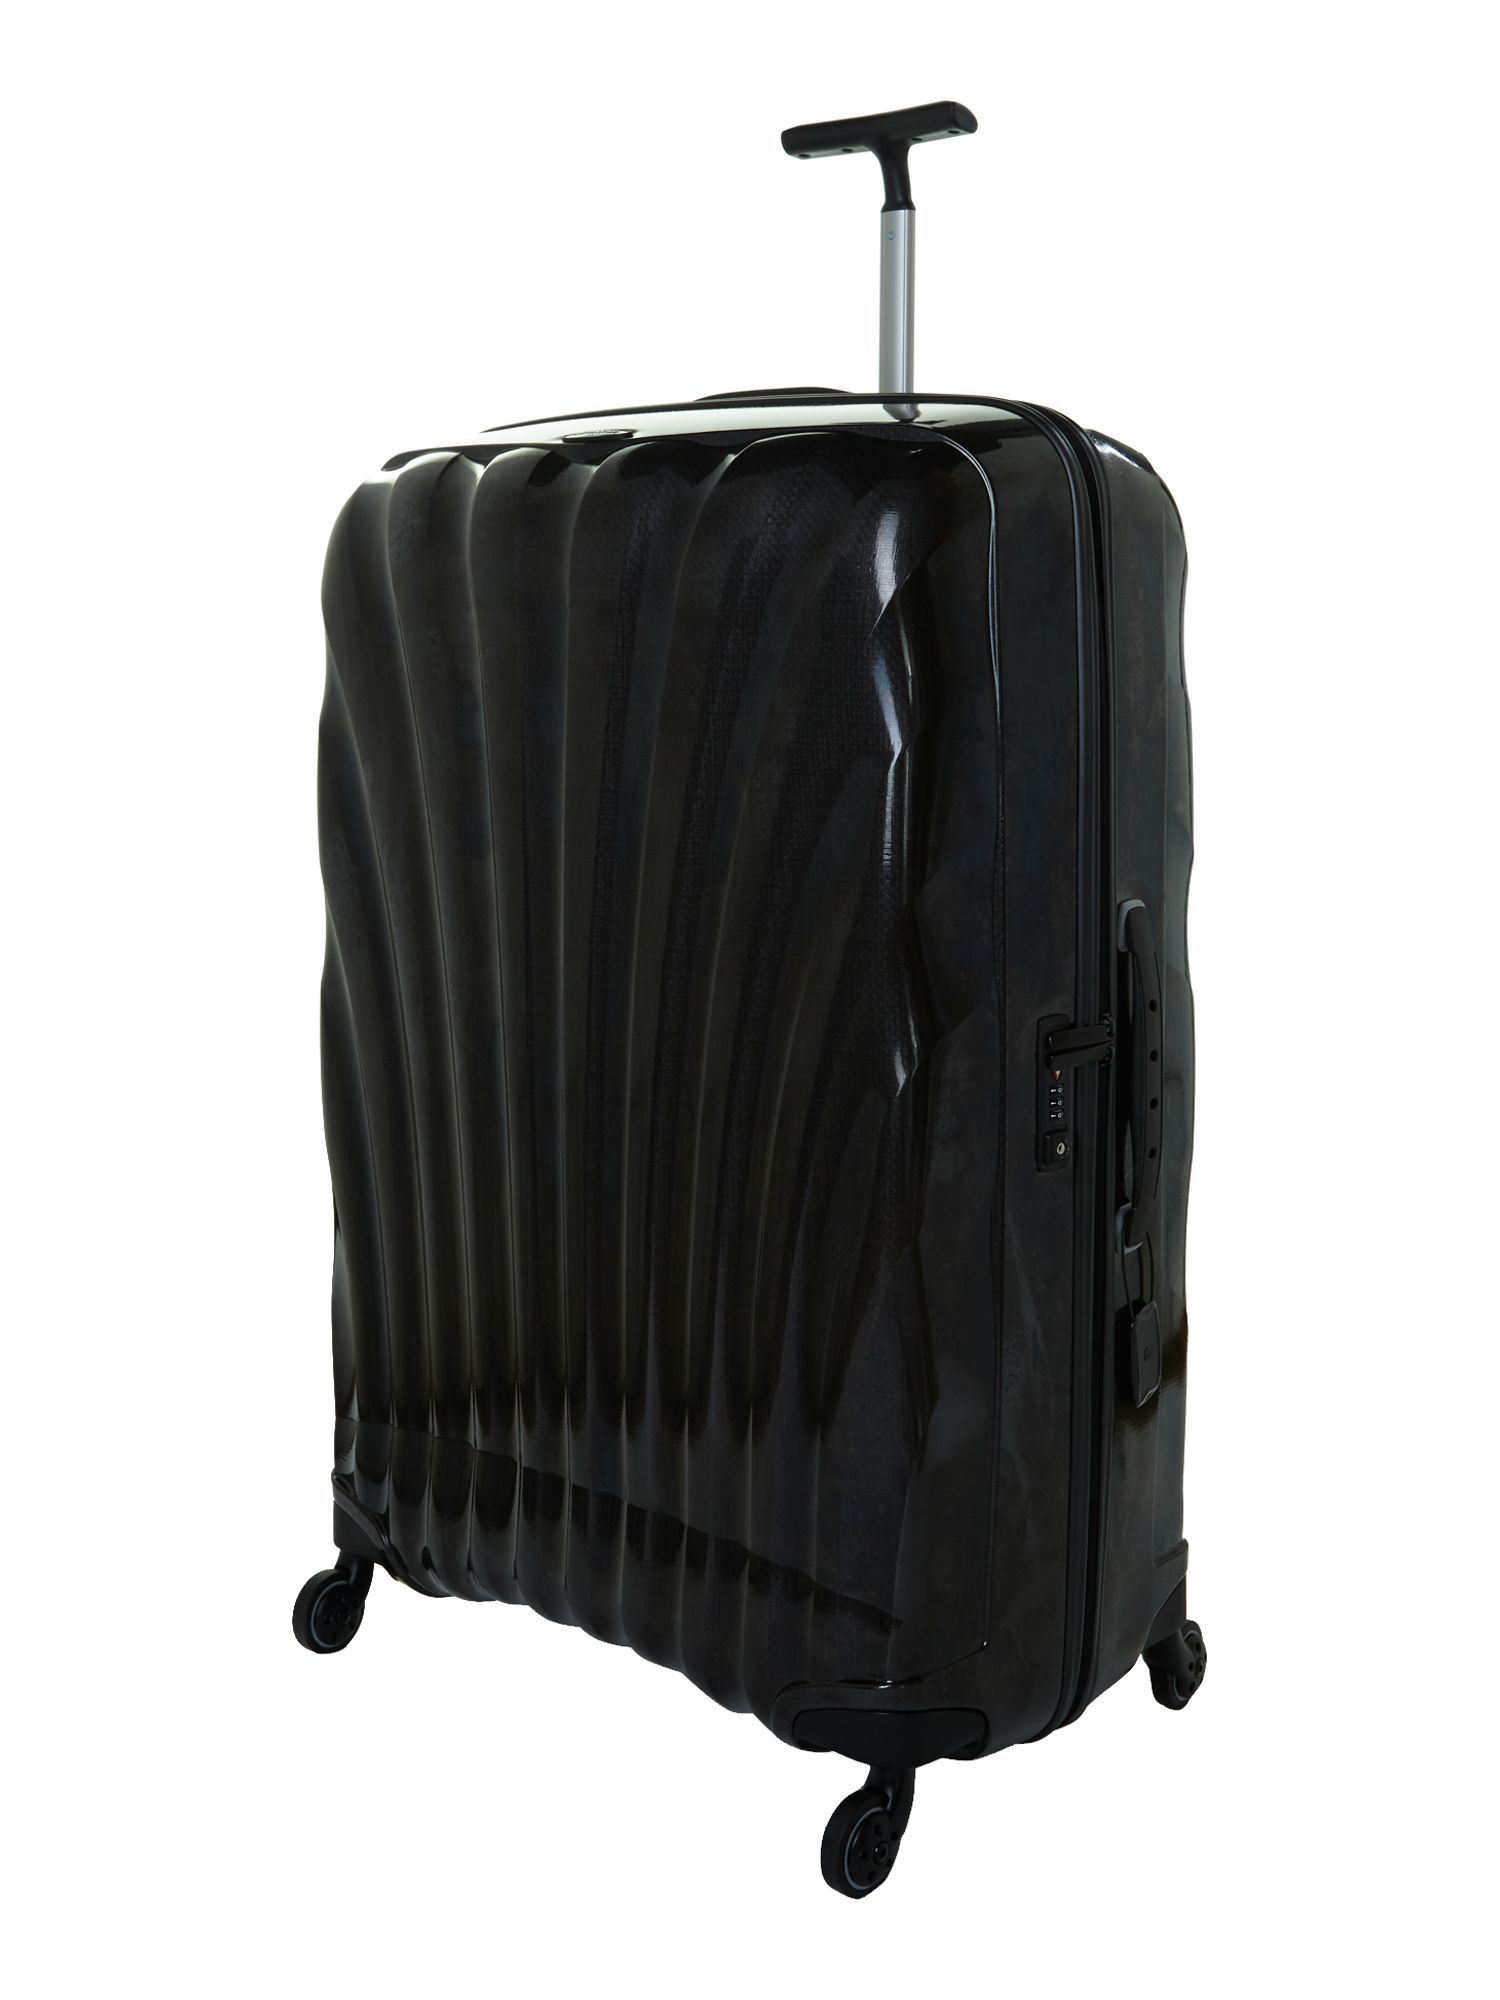 New cosmolite 4-wheel black extra large suitcase